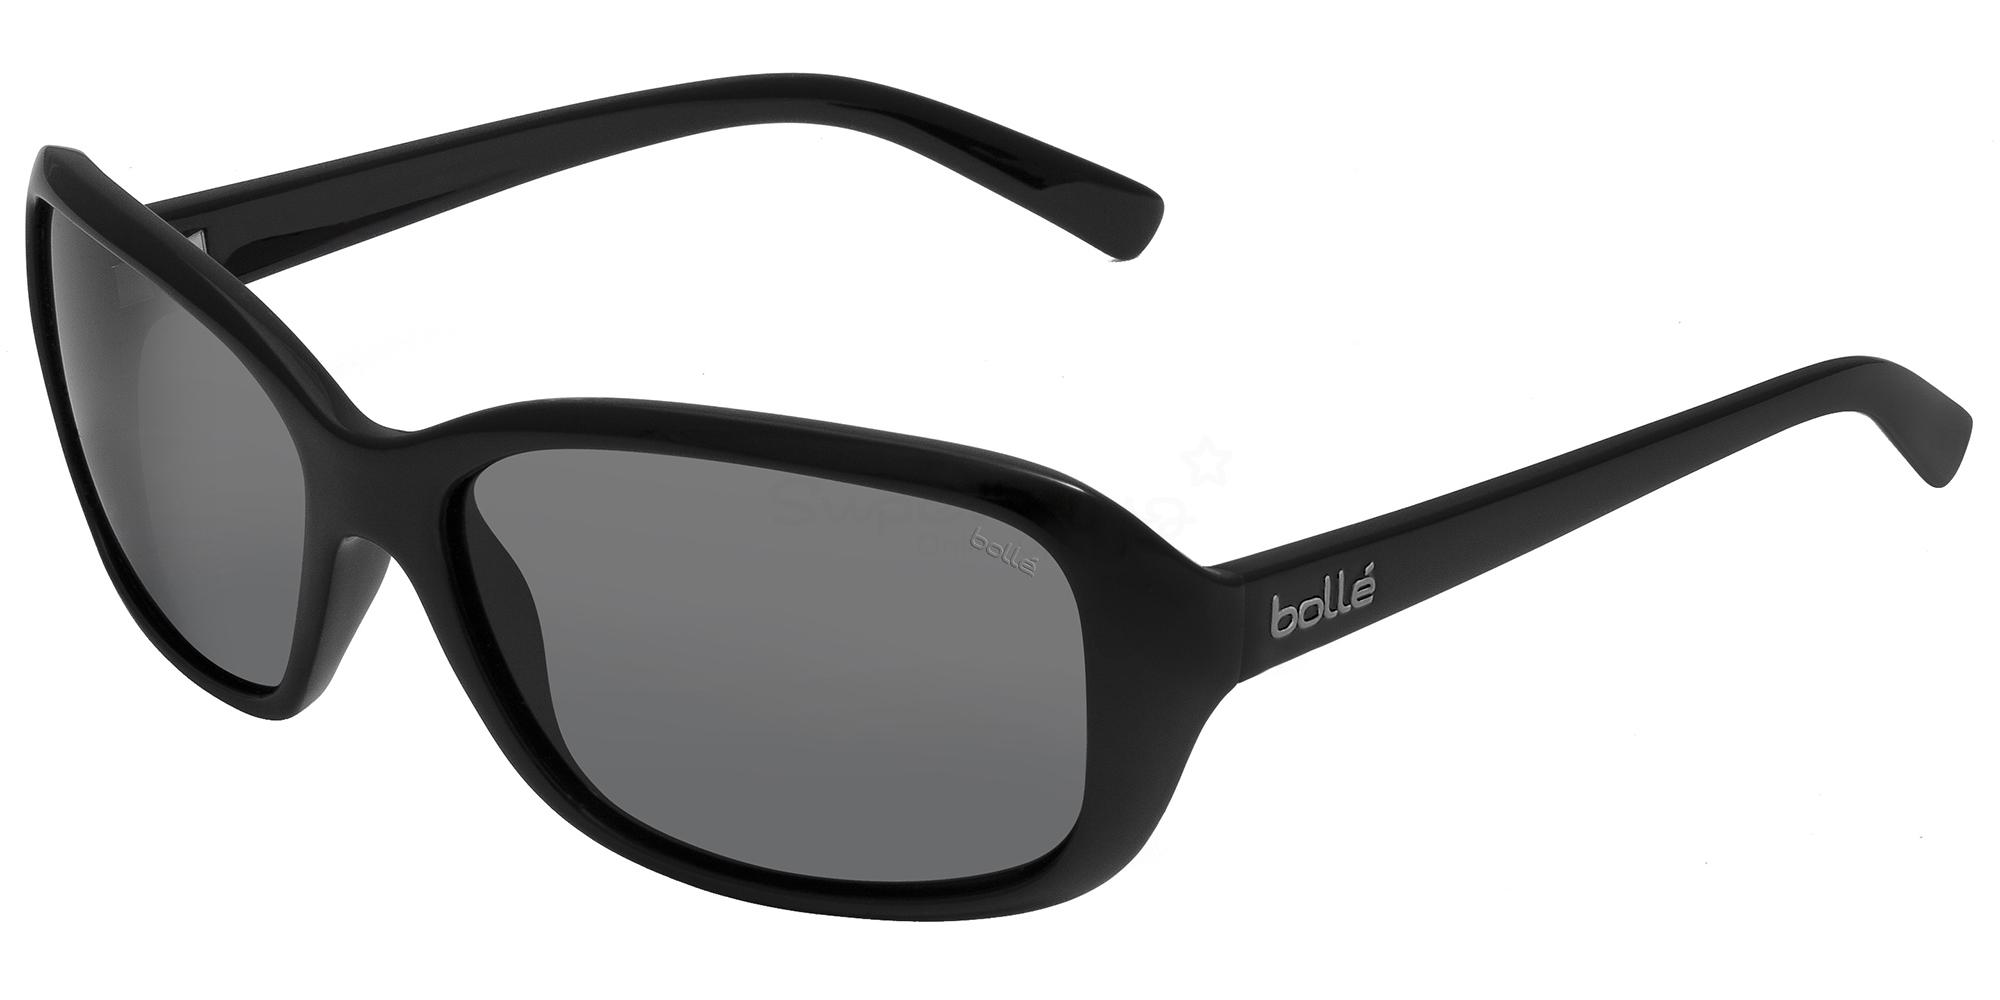 11510 Molly Sunglasses, Bolle